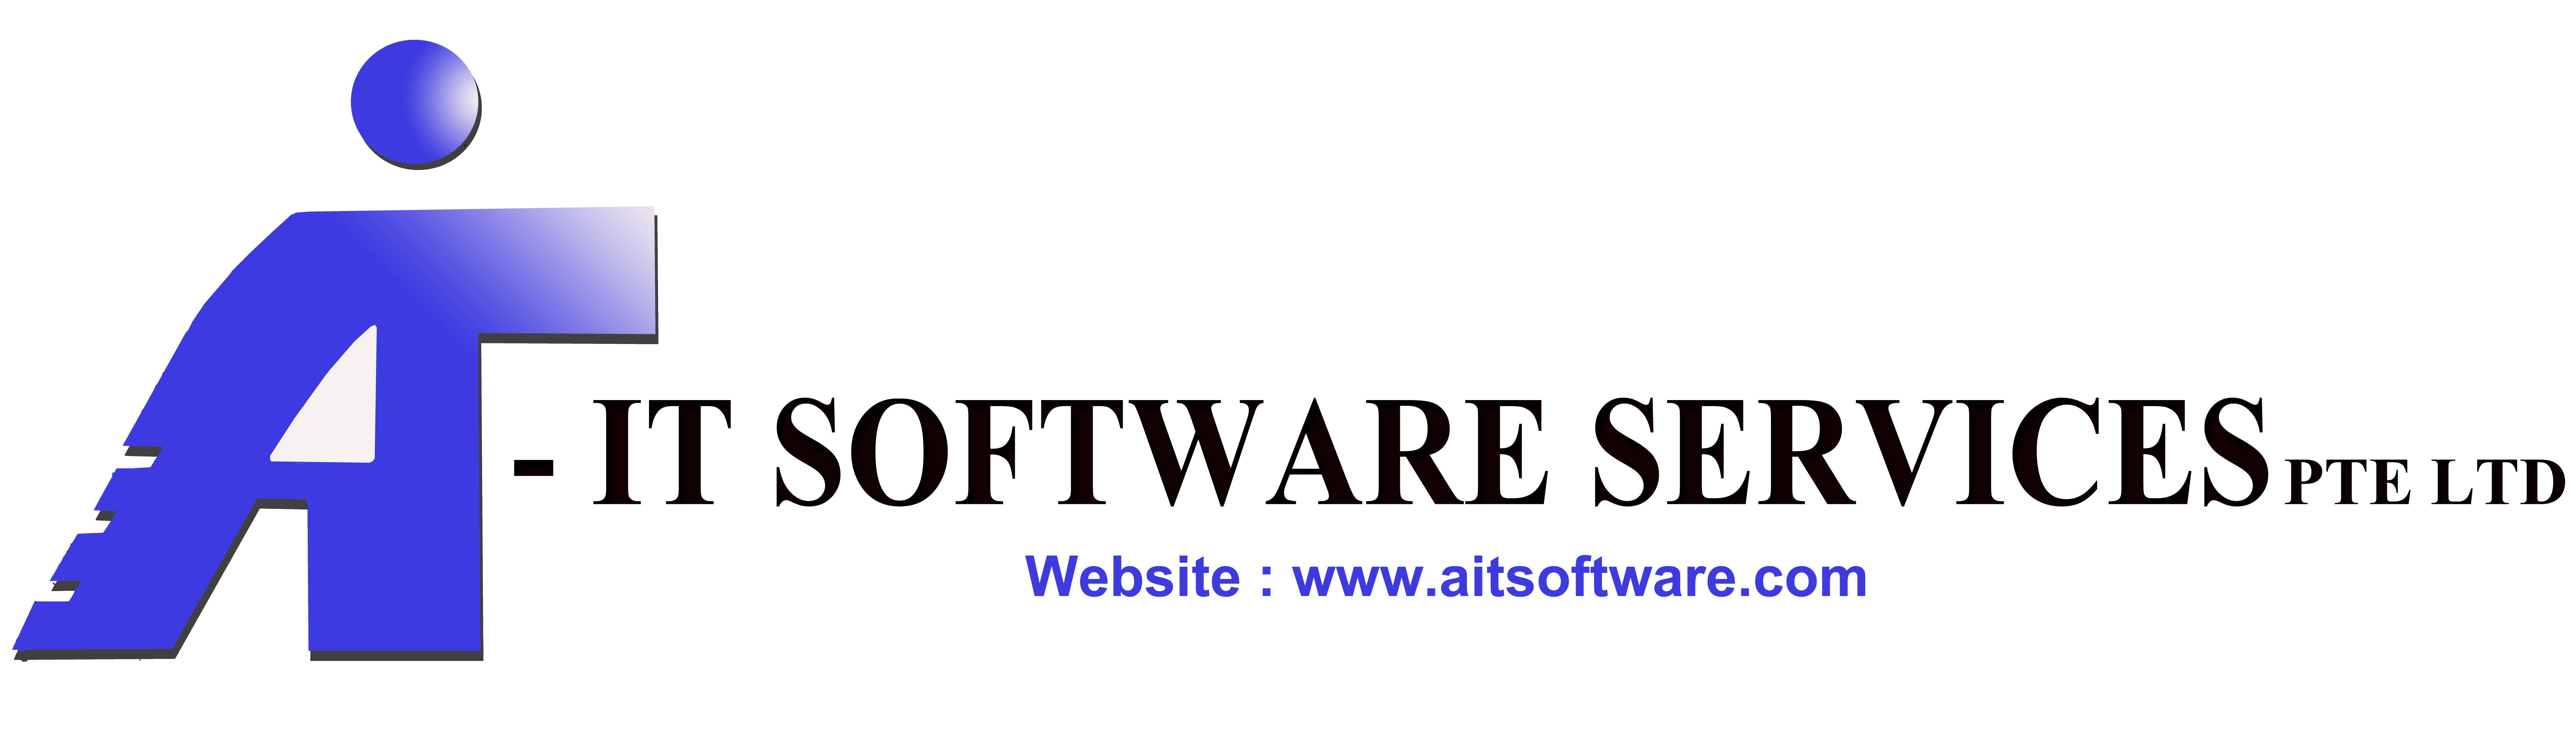 A-IT Software Services Pte Ltd